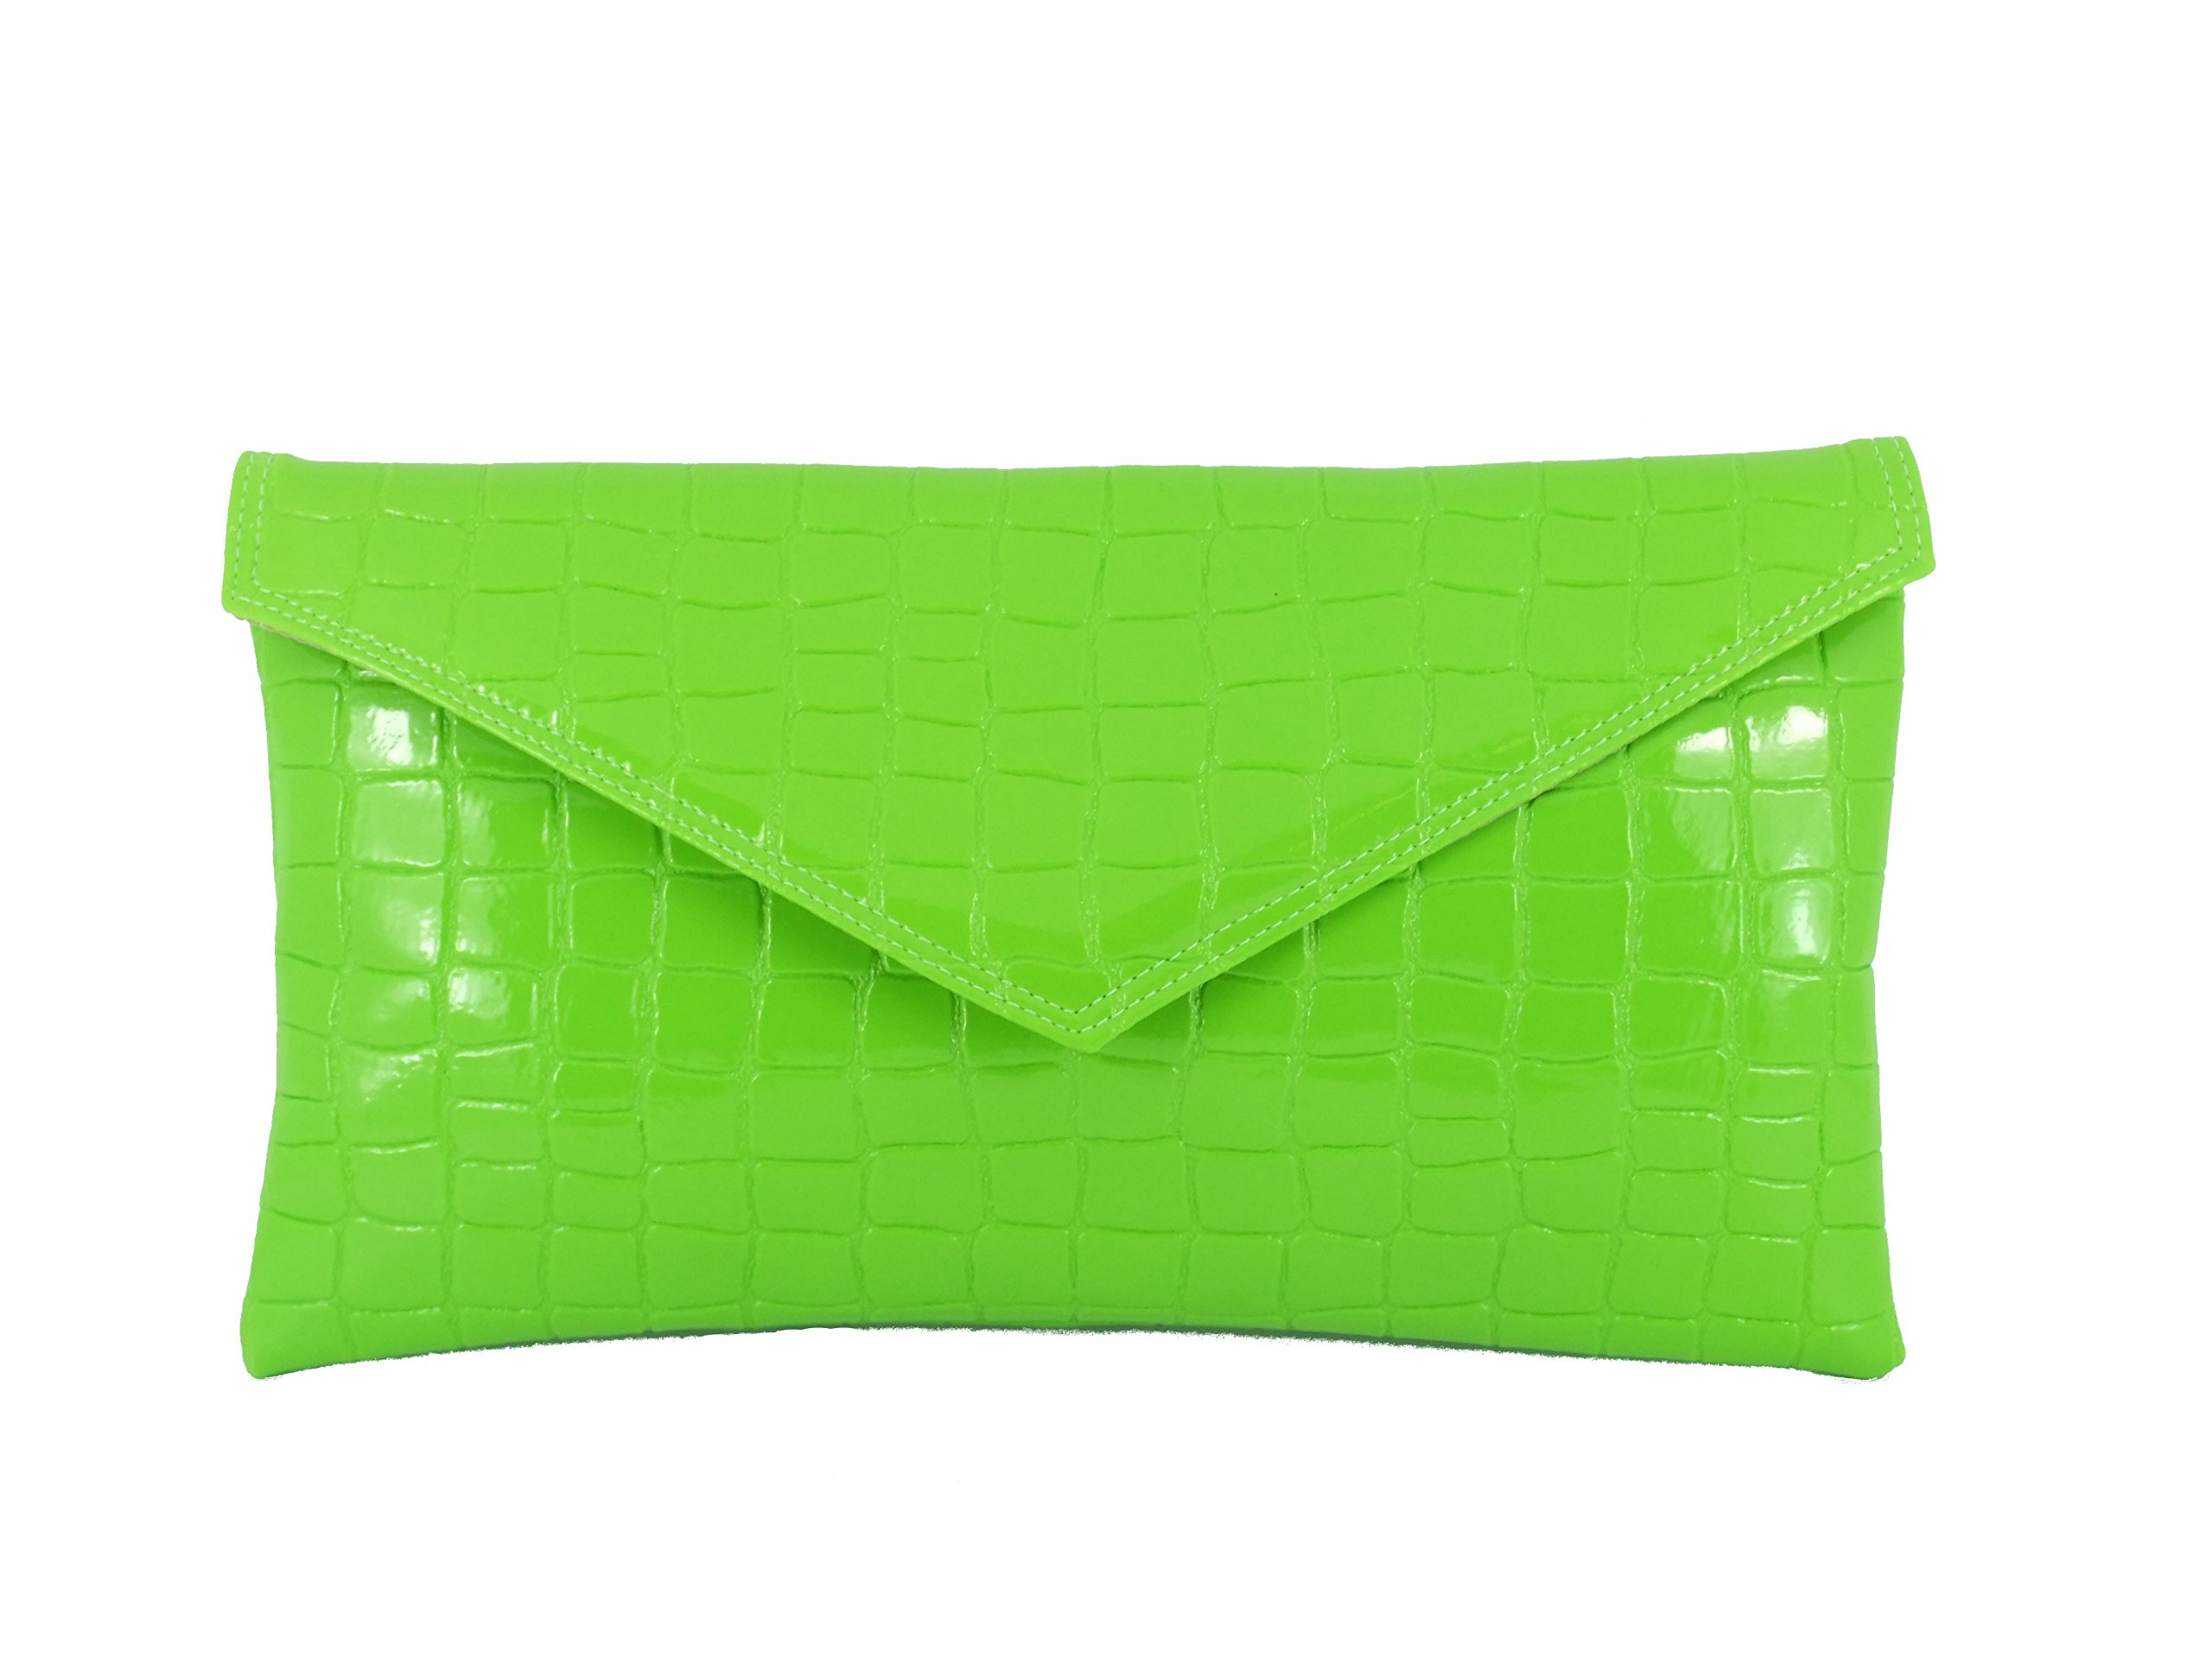 Loni Womens Neat envelope patent croc clutch bag in Lime Green